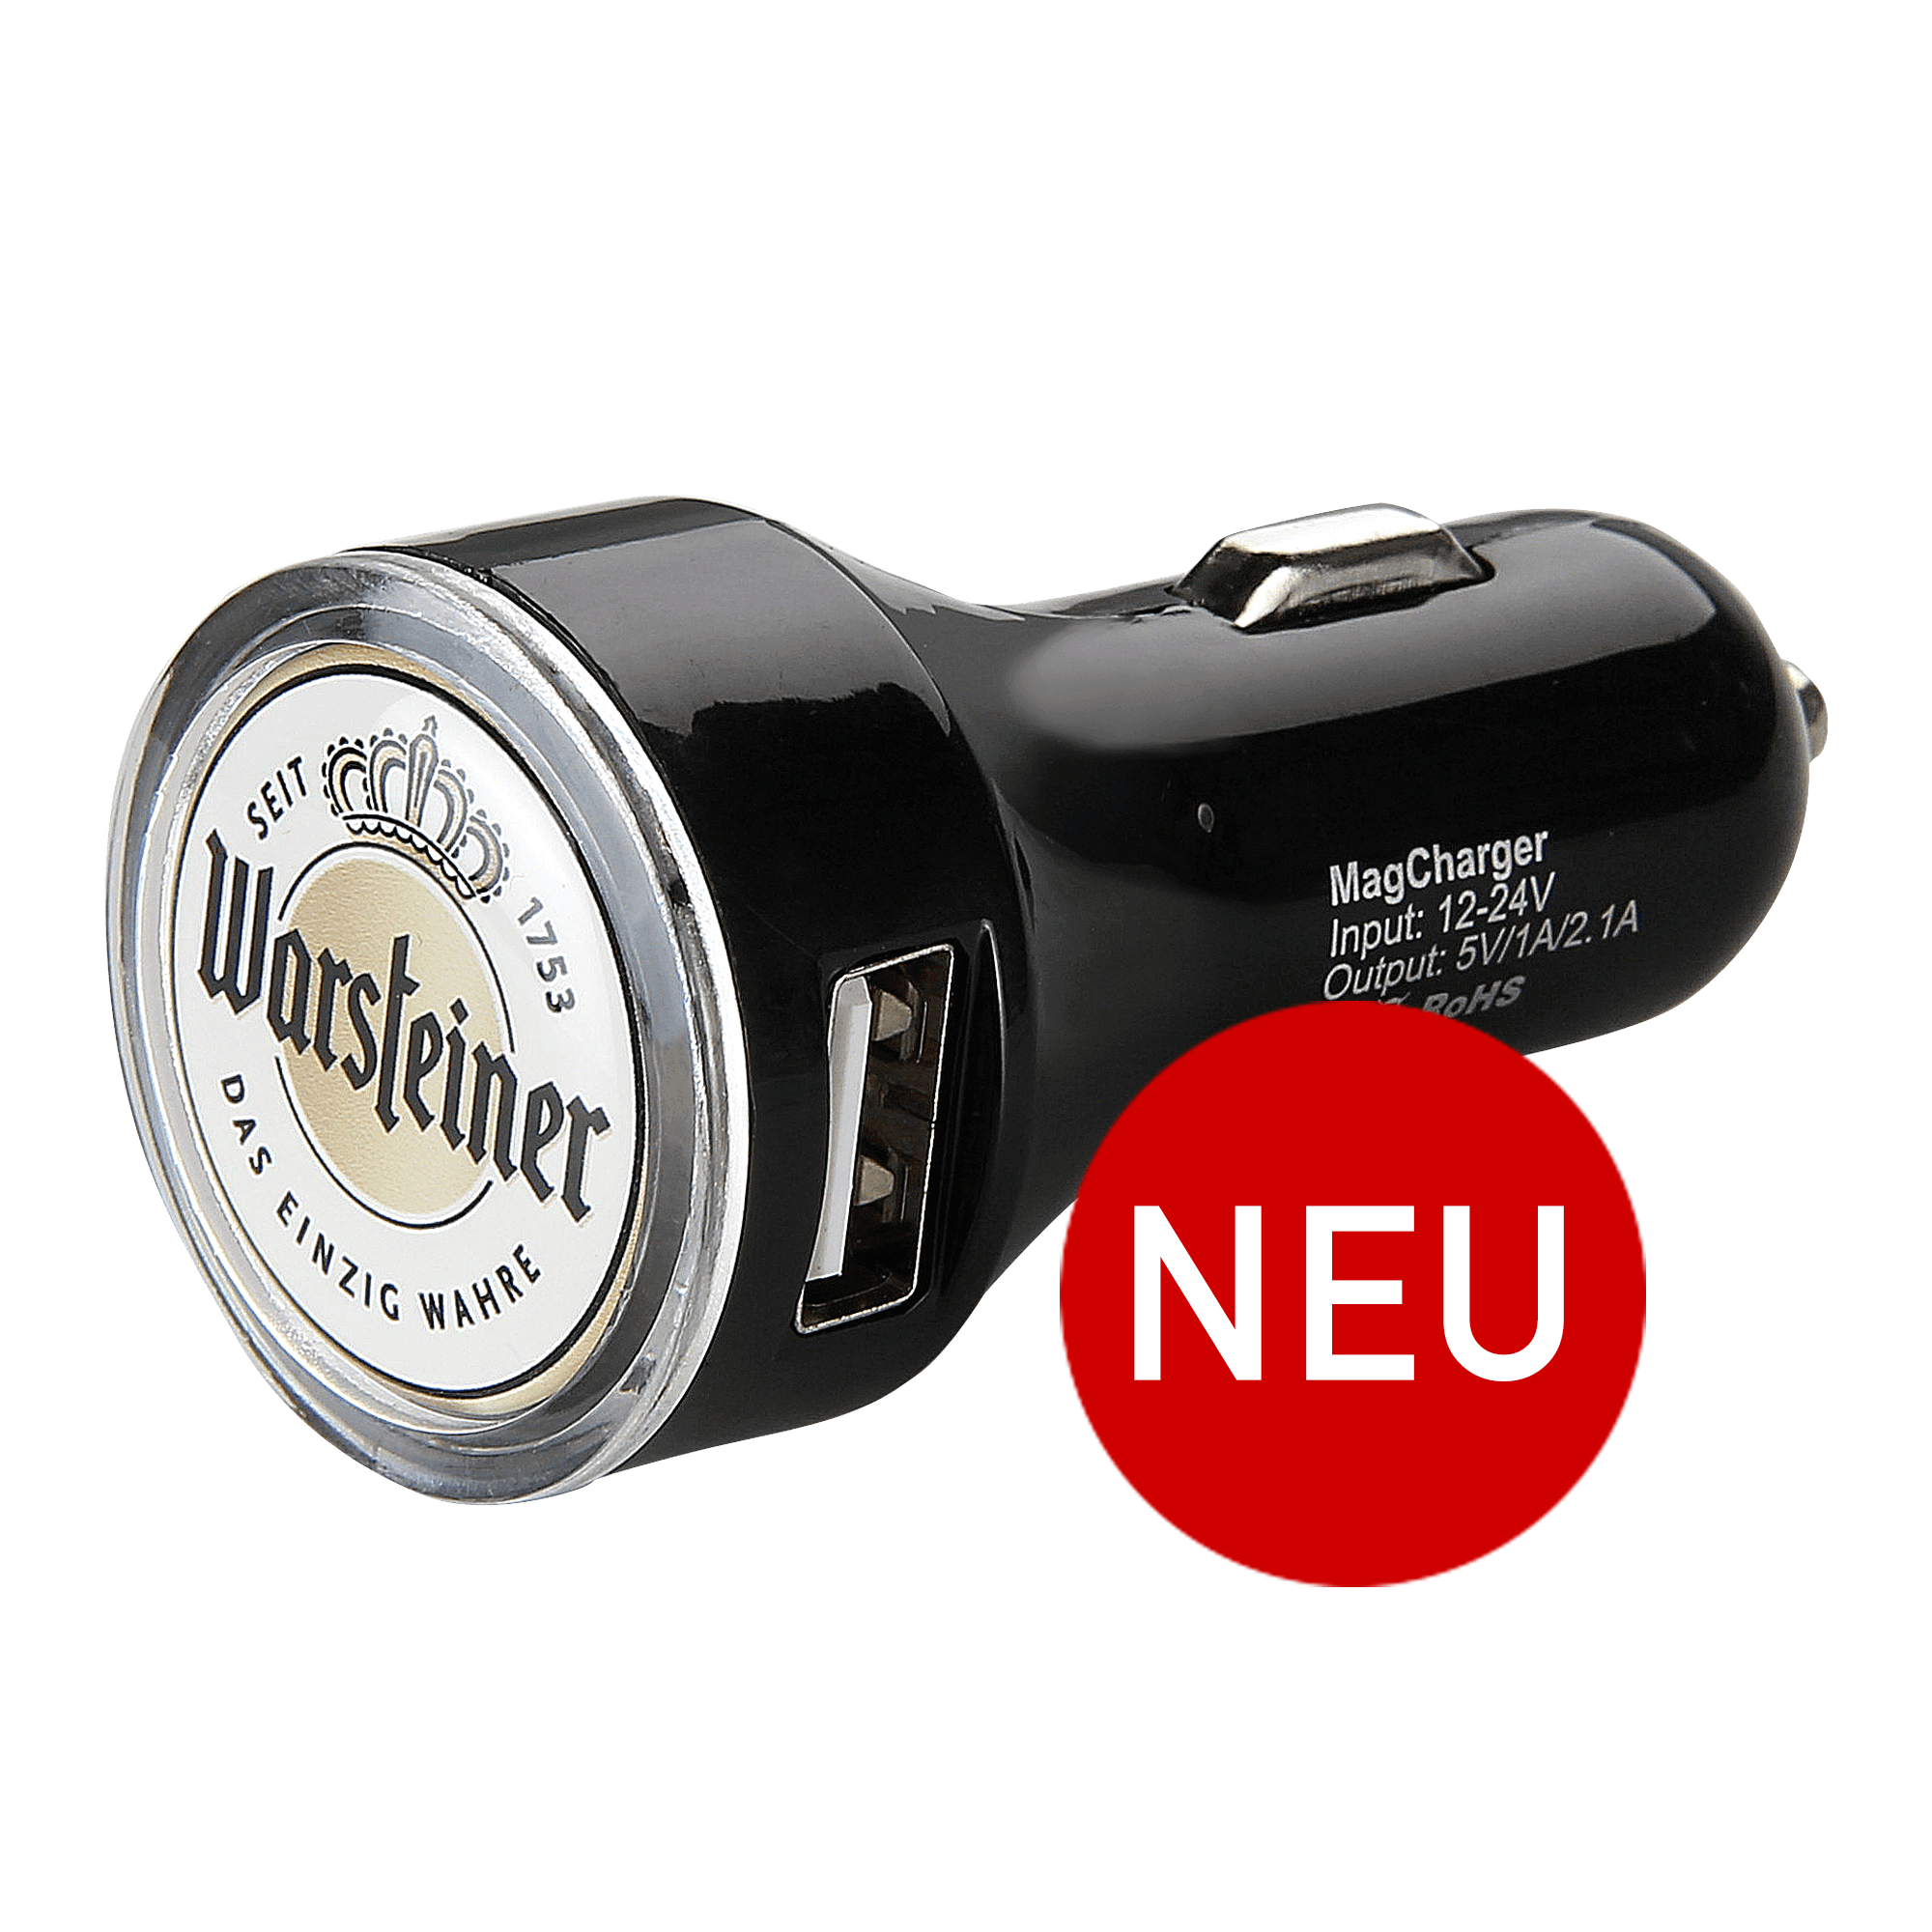 Warsteiner Car Charger